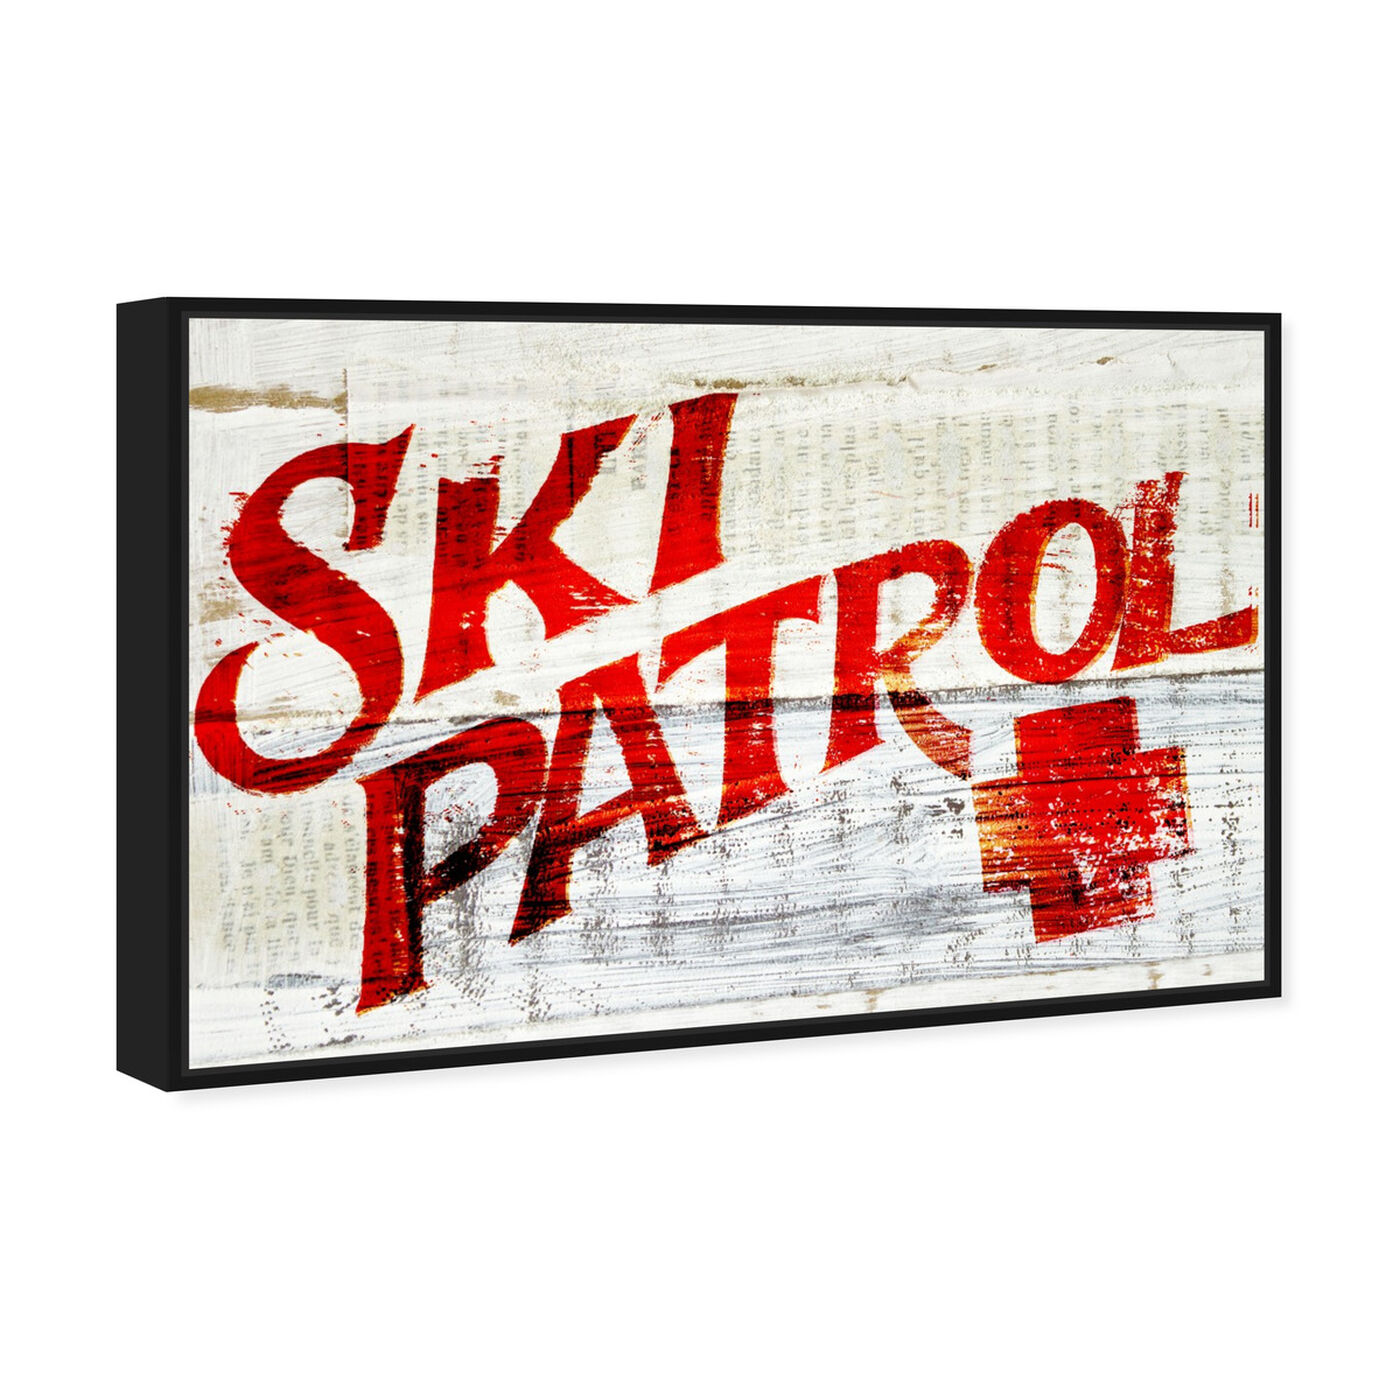 Angled view of Ski Patrol Vintage featuring advertising and posters art.